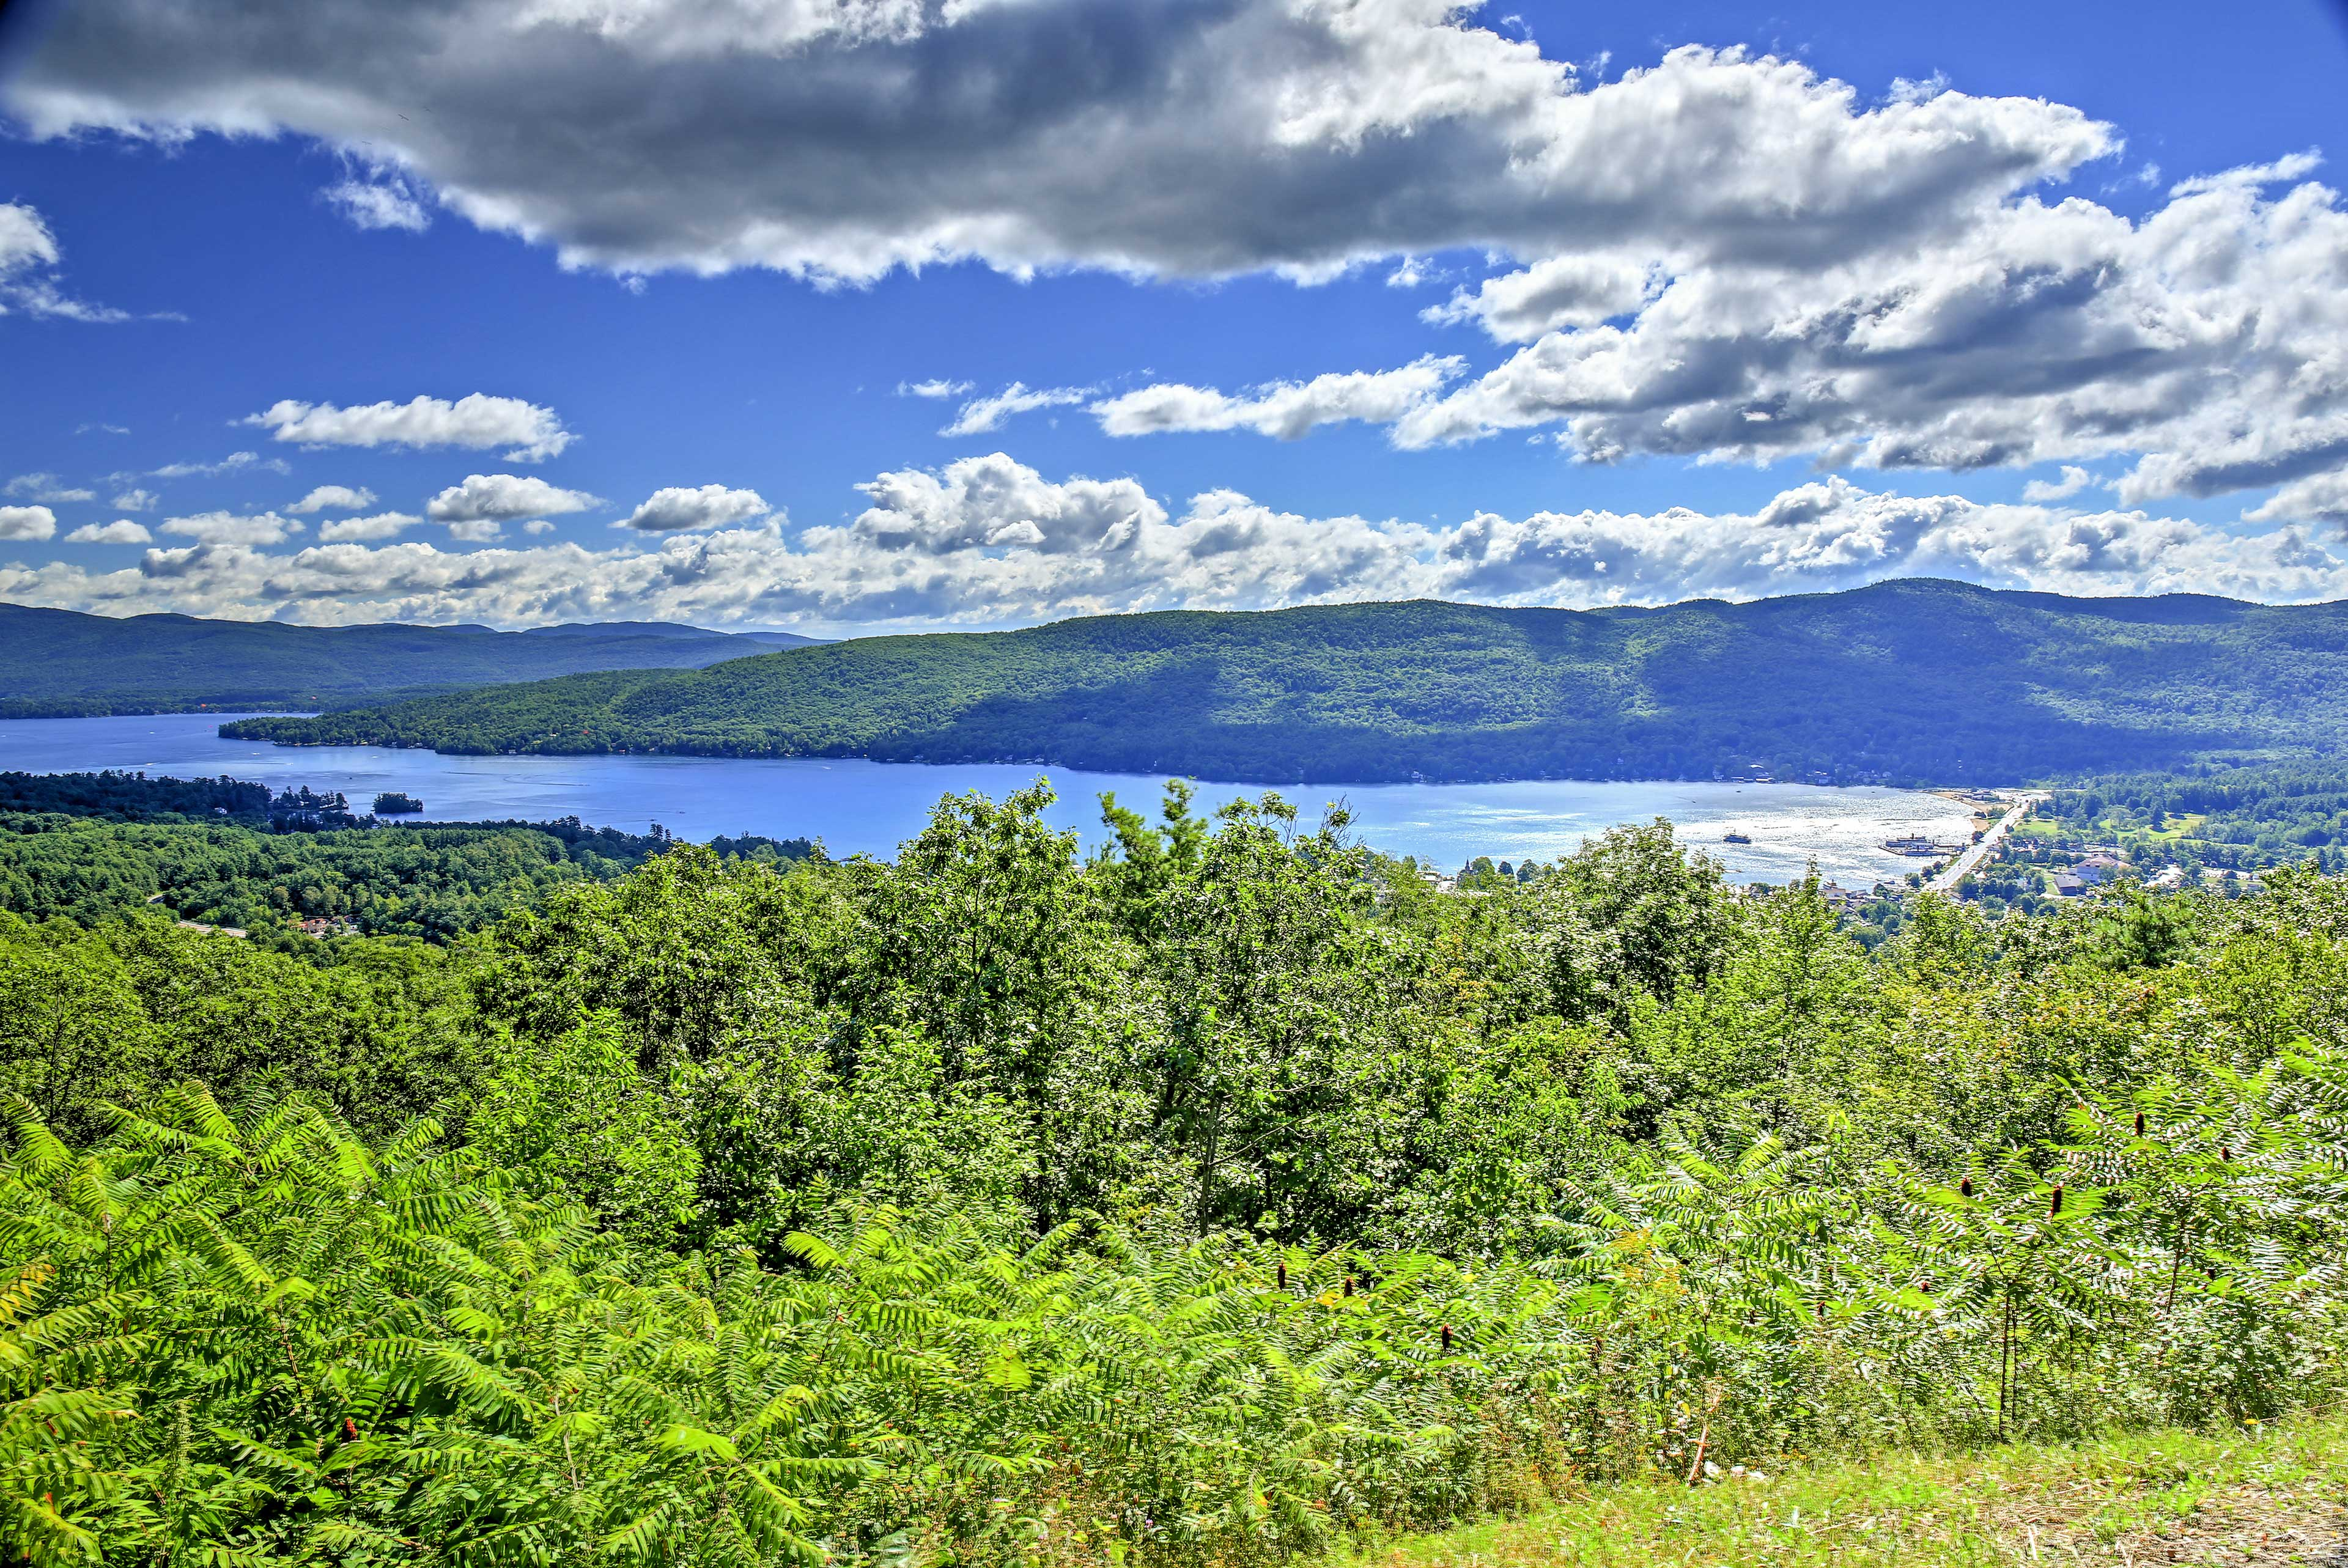 Explore the beautiful nearby lakes for your next Upstate New York retreat.